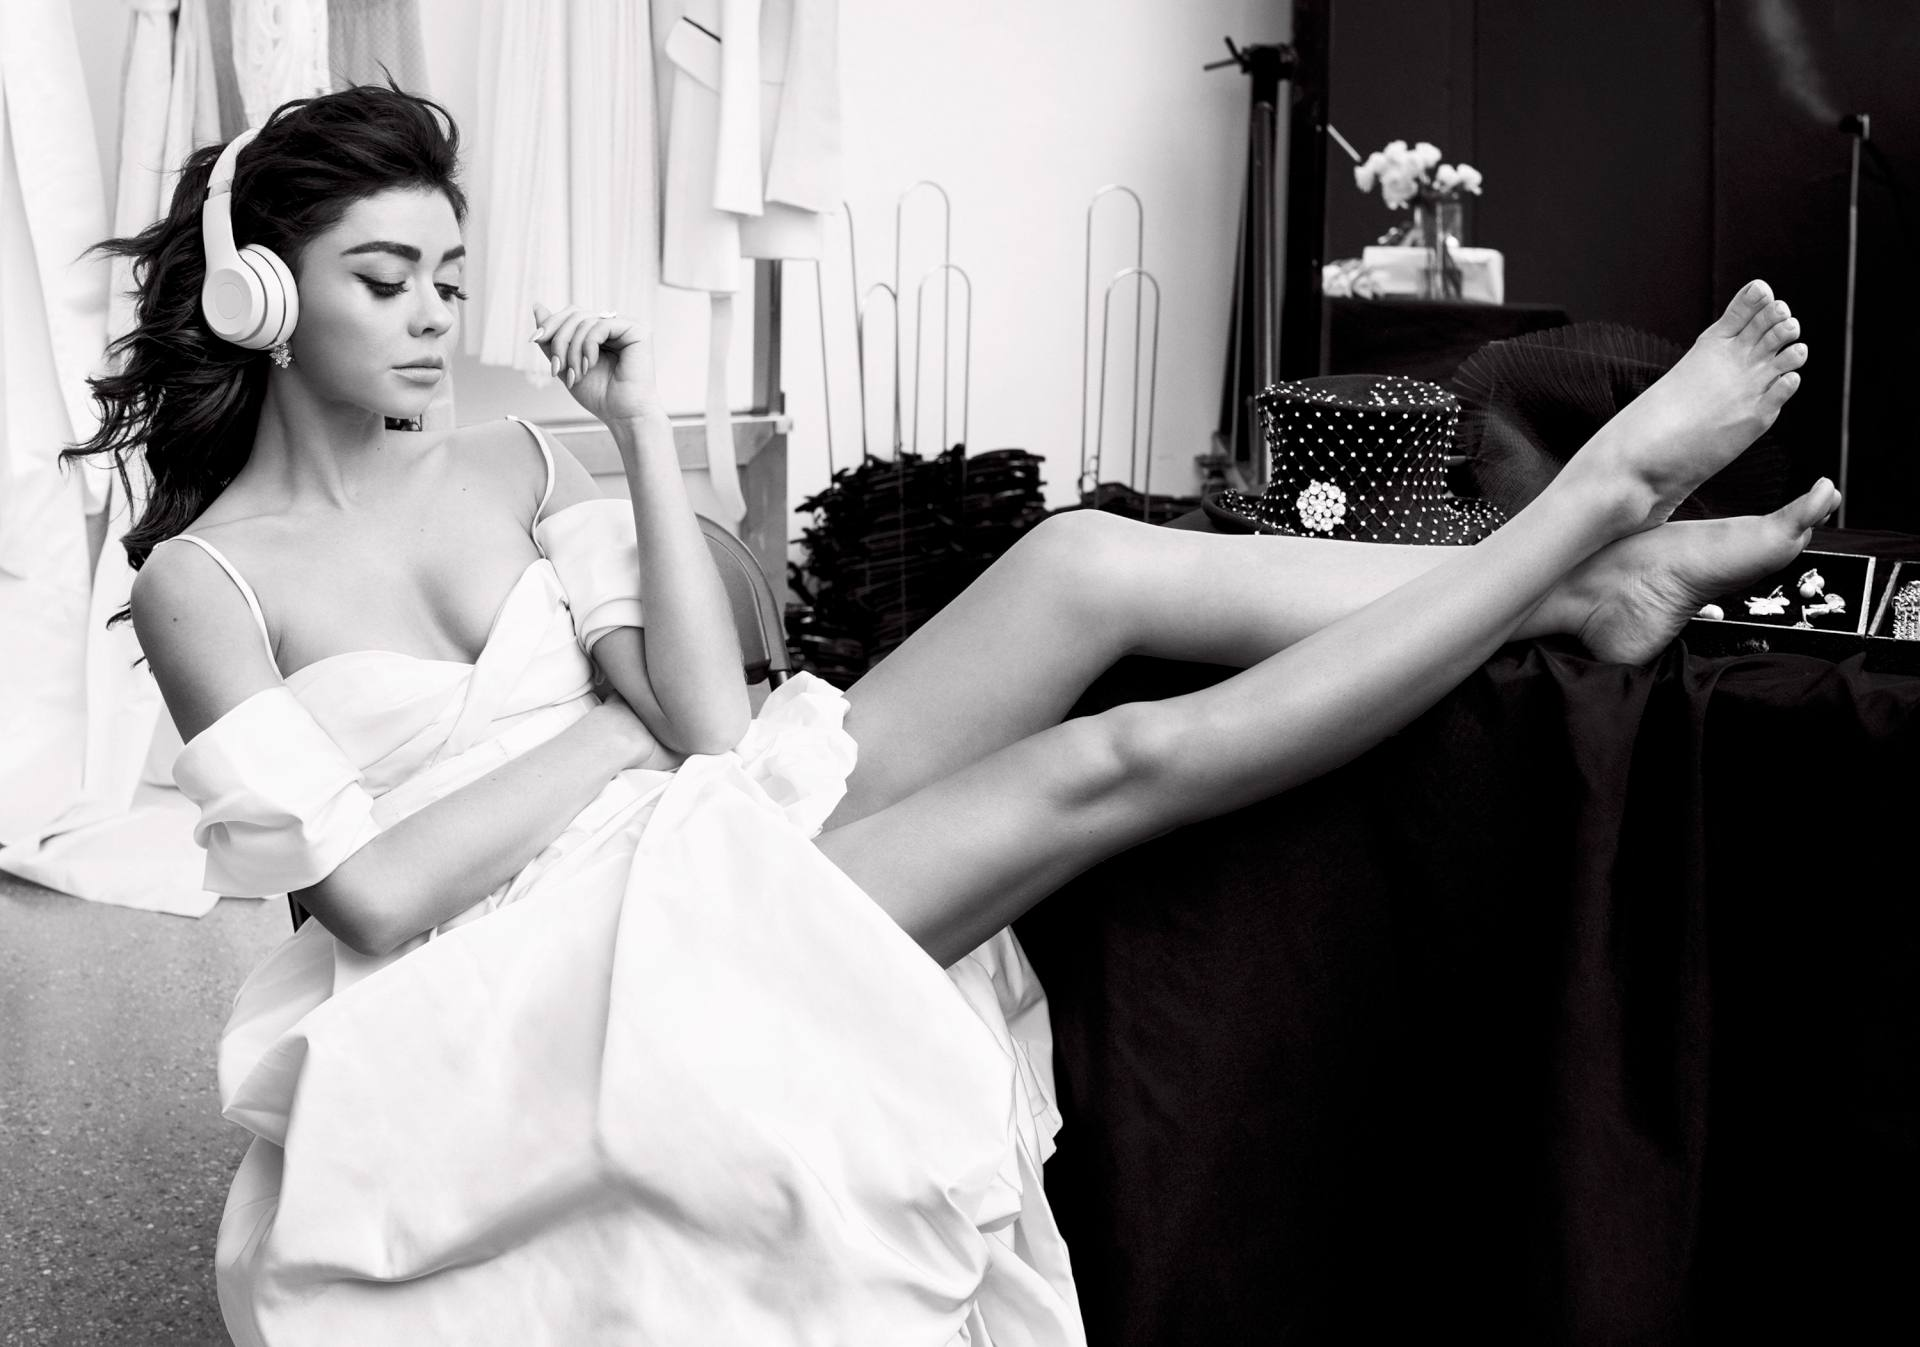 Sarah Hyland Sexy Legs In Alluring Photoshoot For Cosmopolitan Magazine (may 2020) 0009